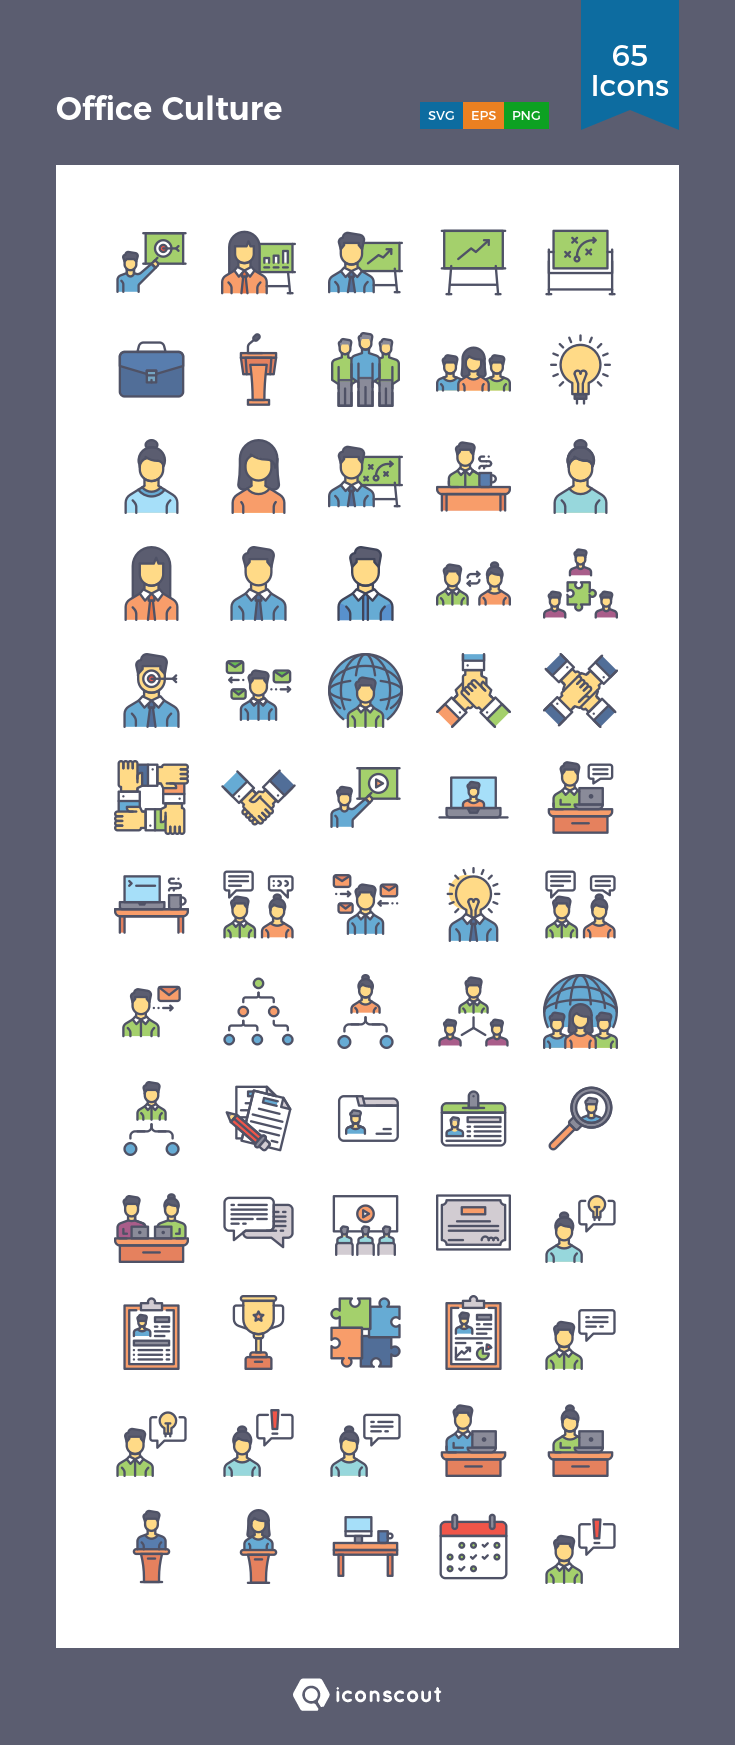 Download Office Culture Icon Pack Available In Svg Png Eps Ai